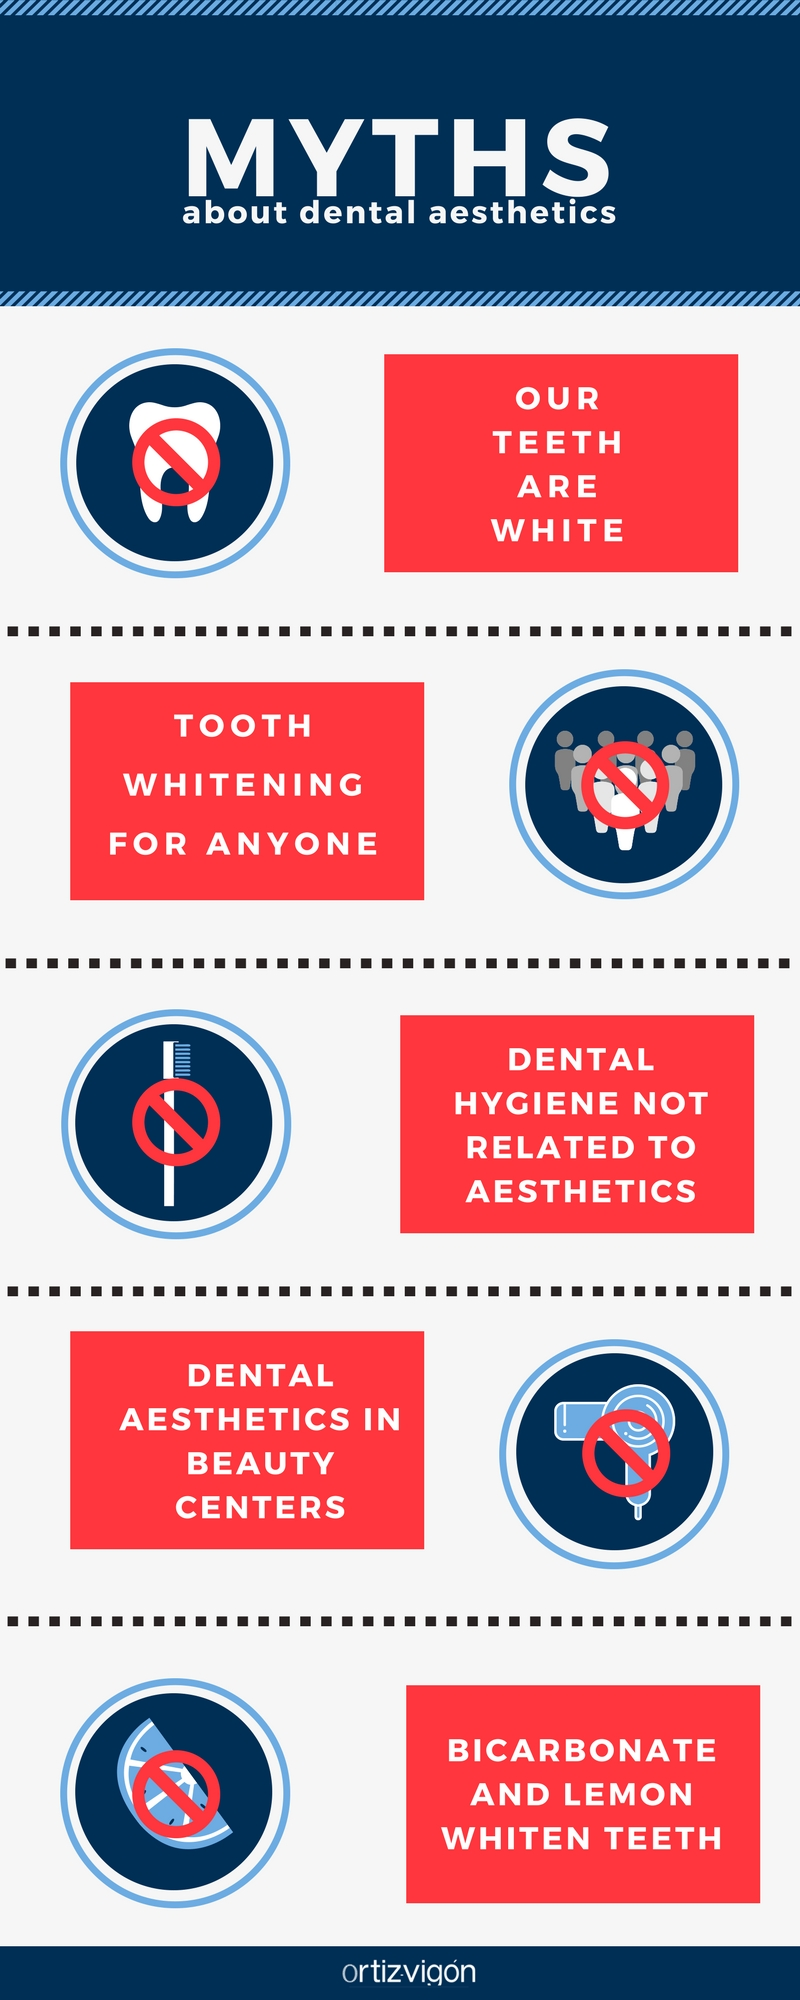 Myths about dental aesthetics